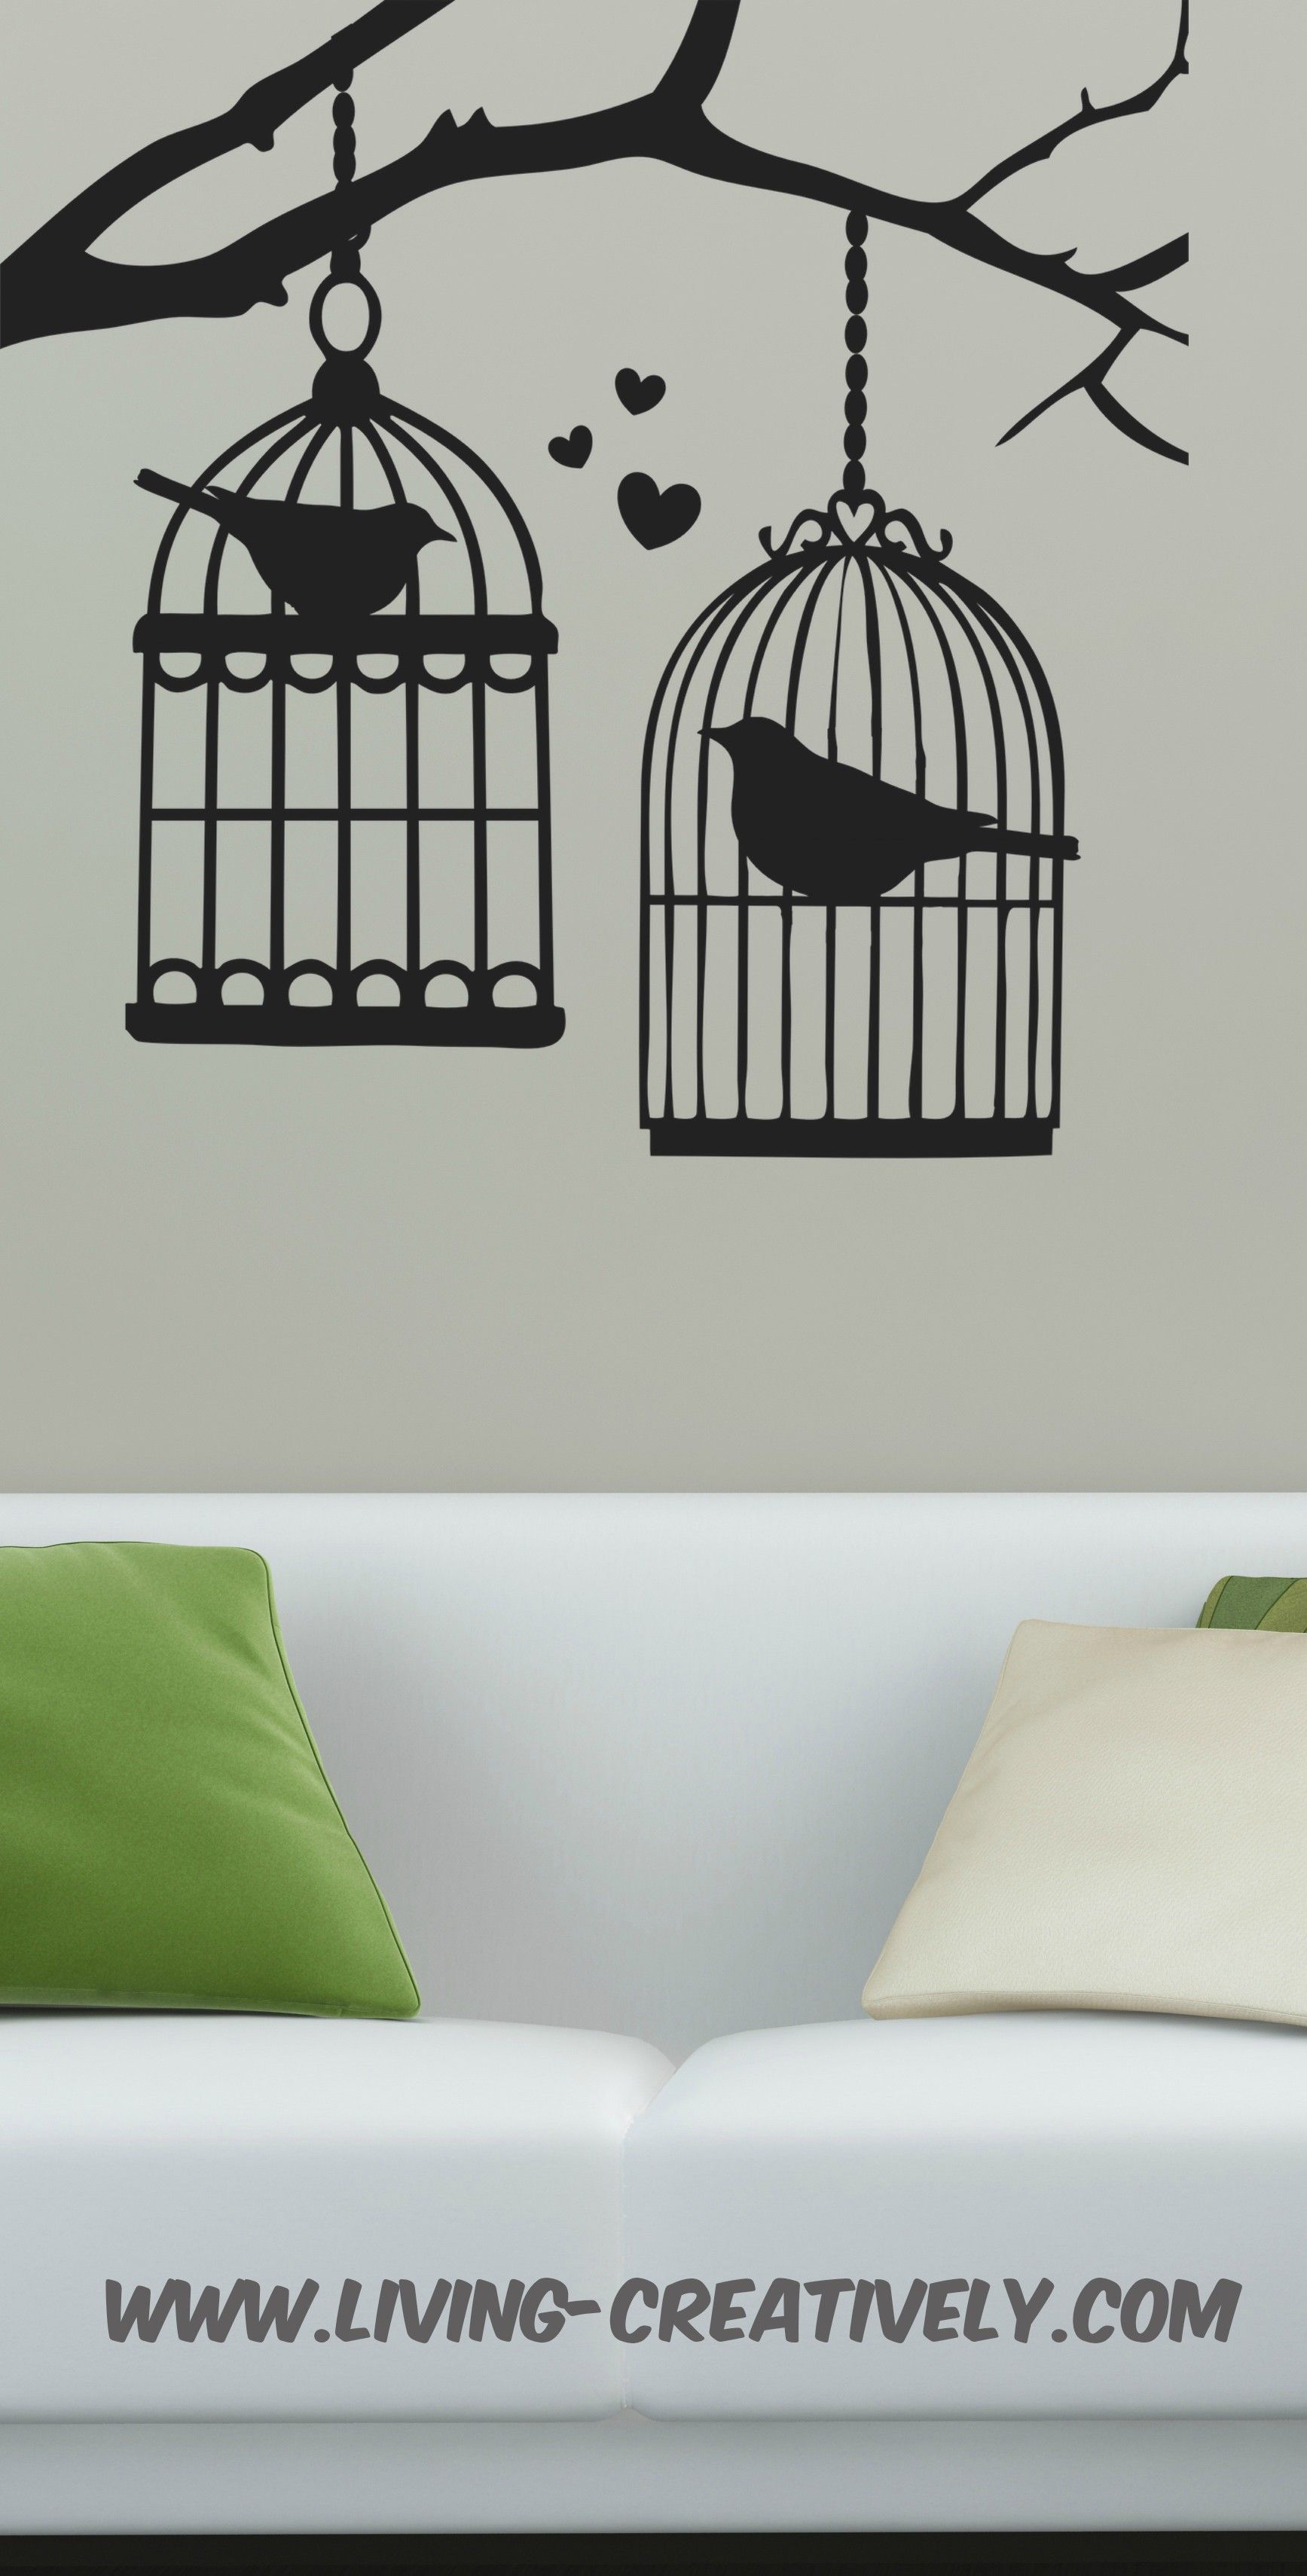 5a37cc773 This Love BIRD Bird cages Wall art DECAL is a fun way to add interest to